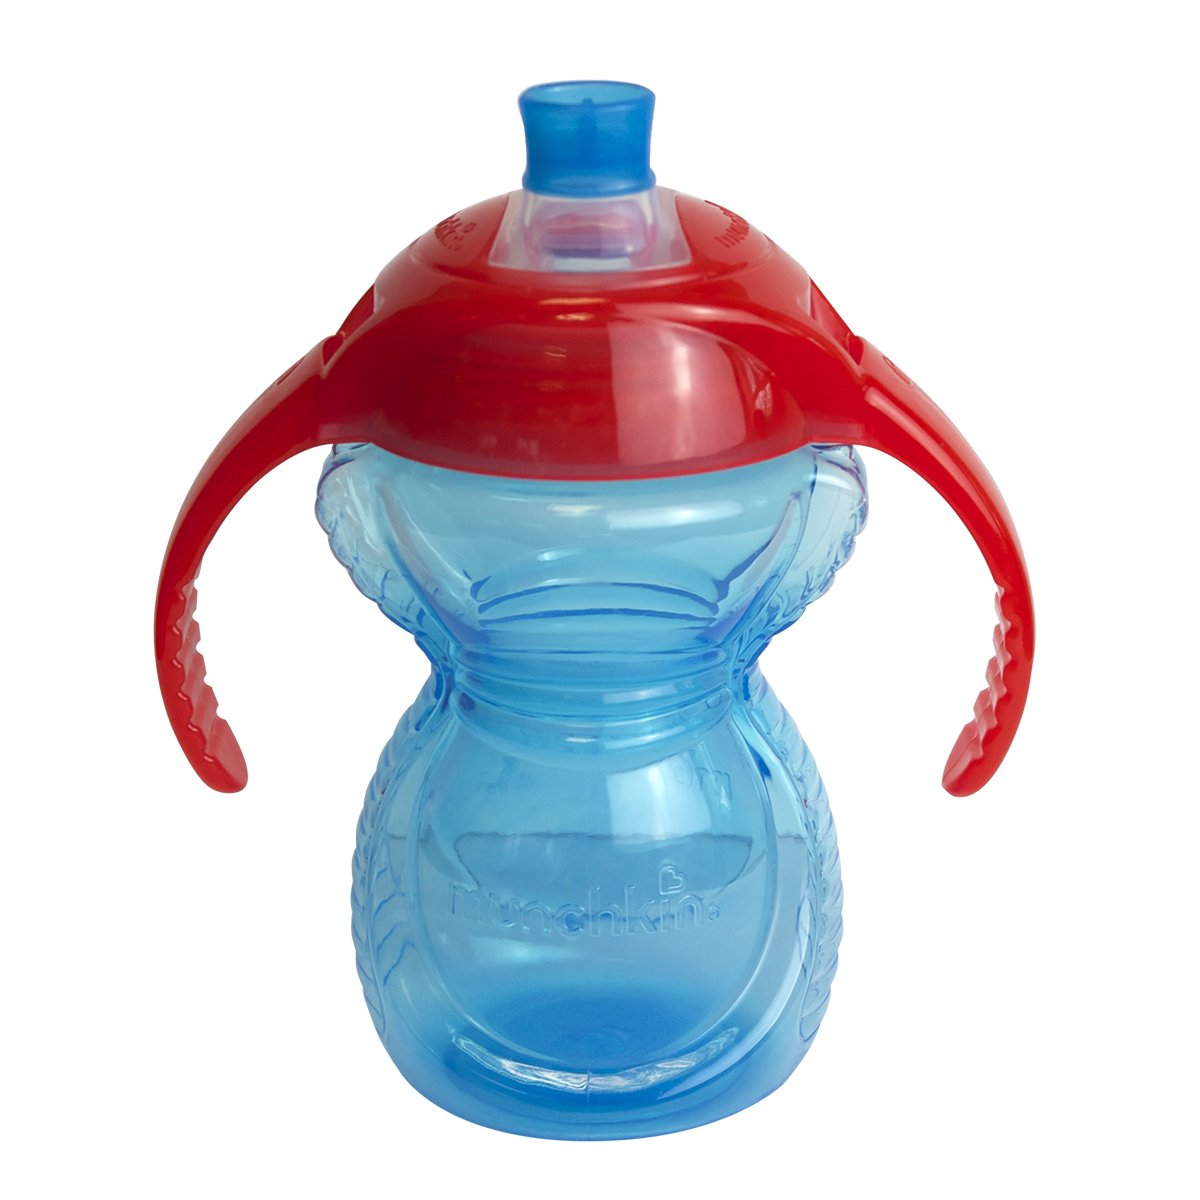 Munchkin Click to Lock Sippy Cup with Chew Proof Spout, 10 oz/296 ml (Color Assorted) 012292